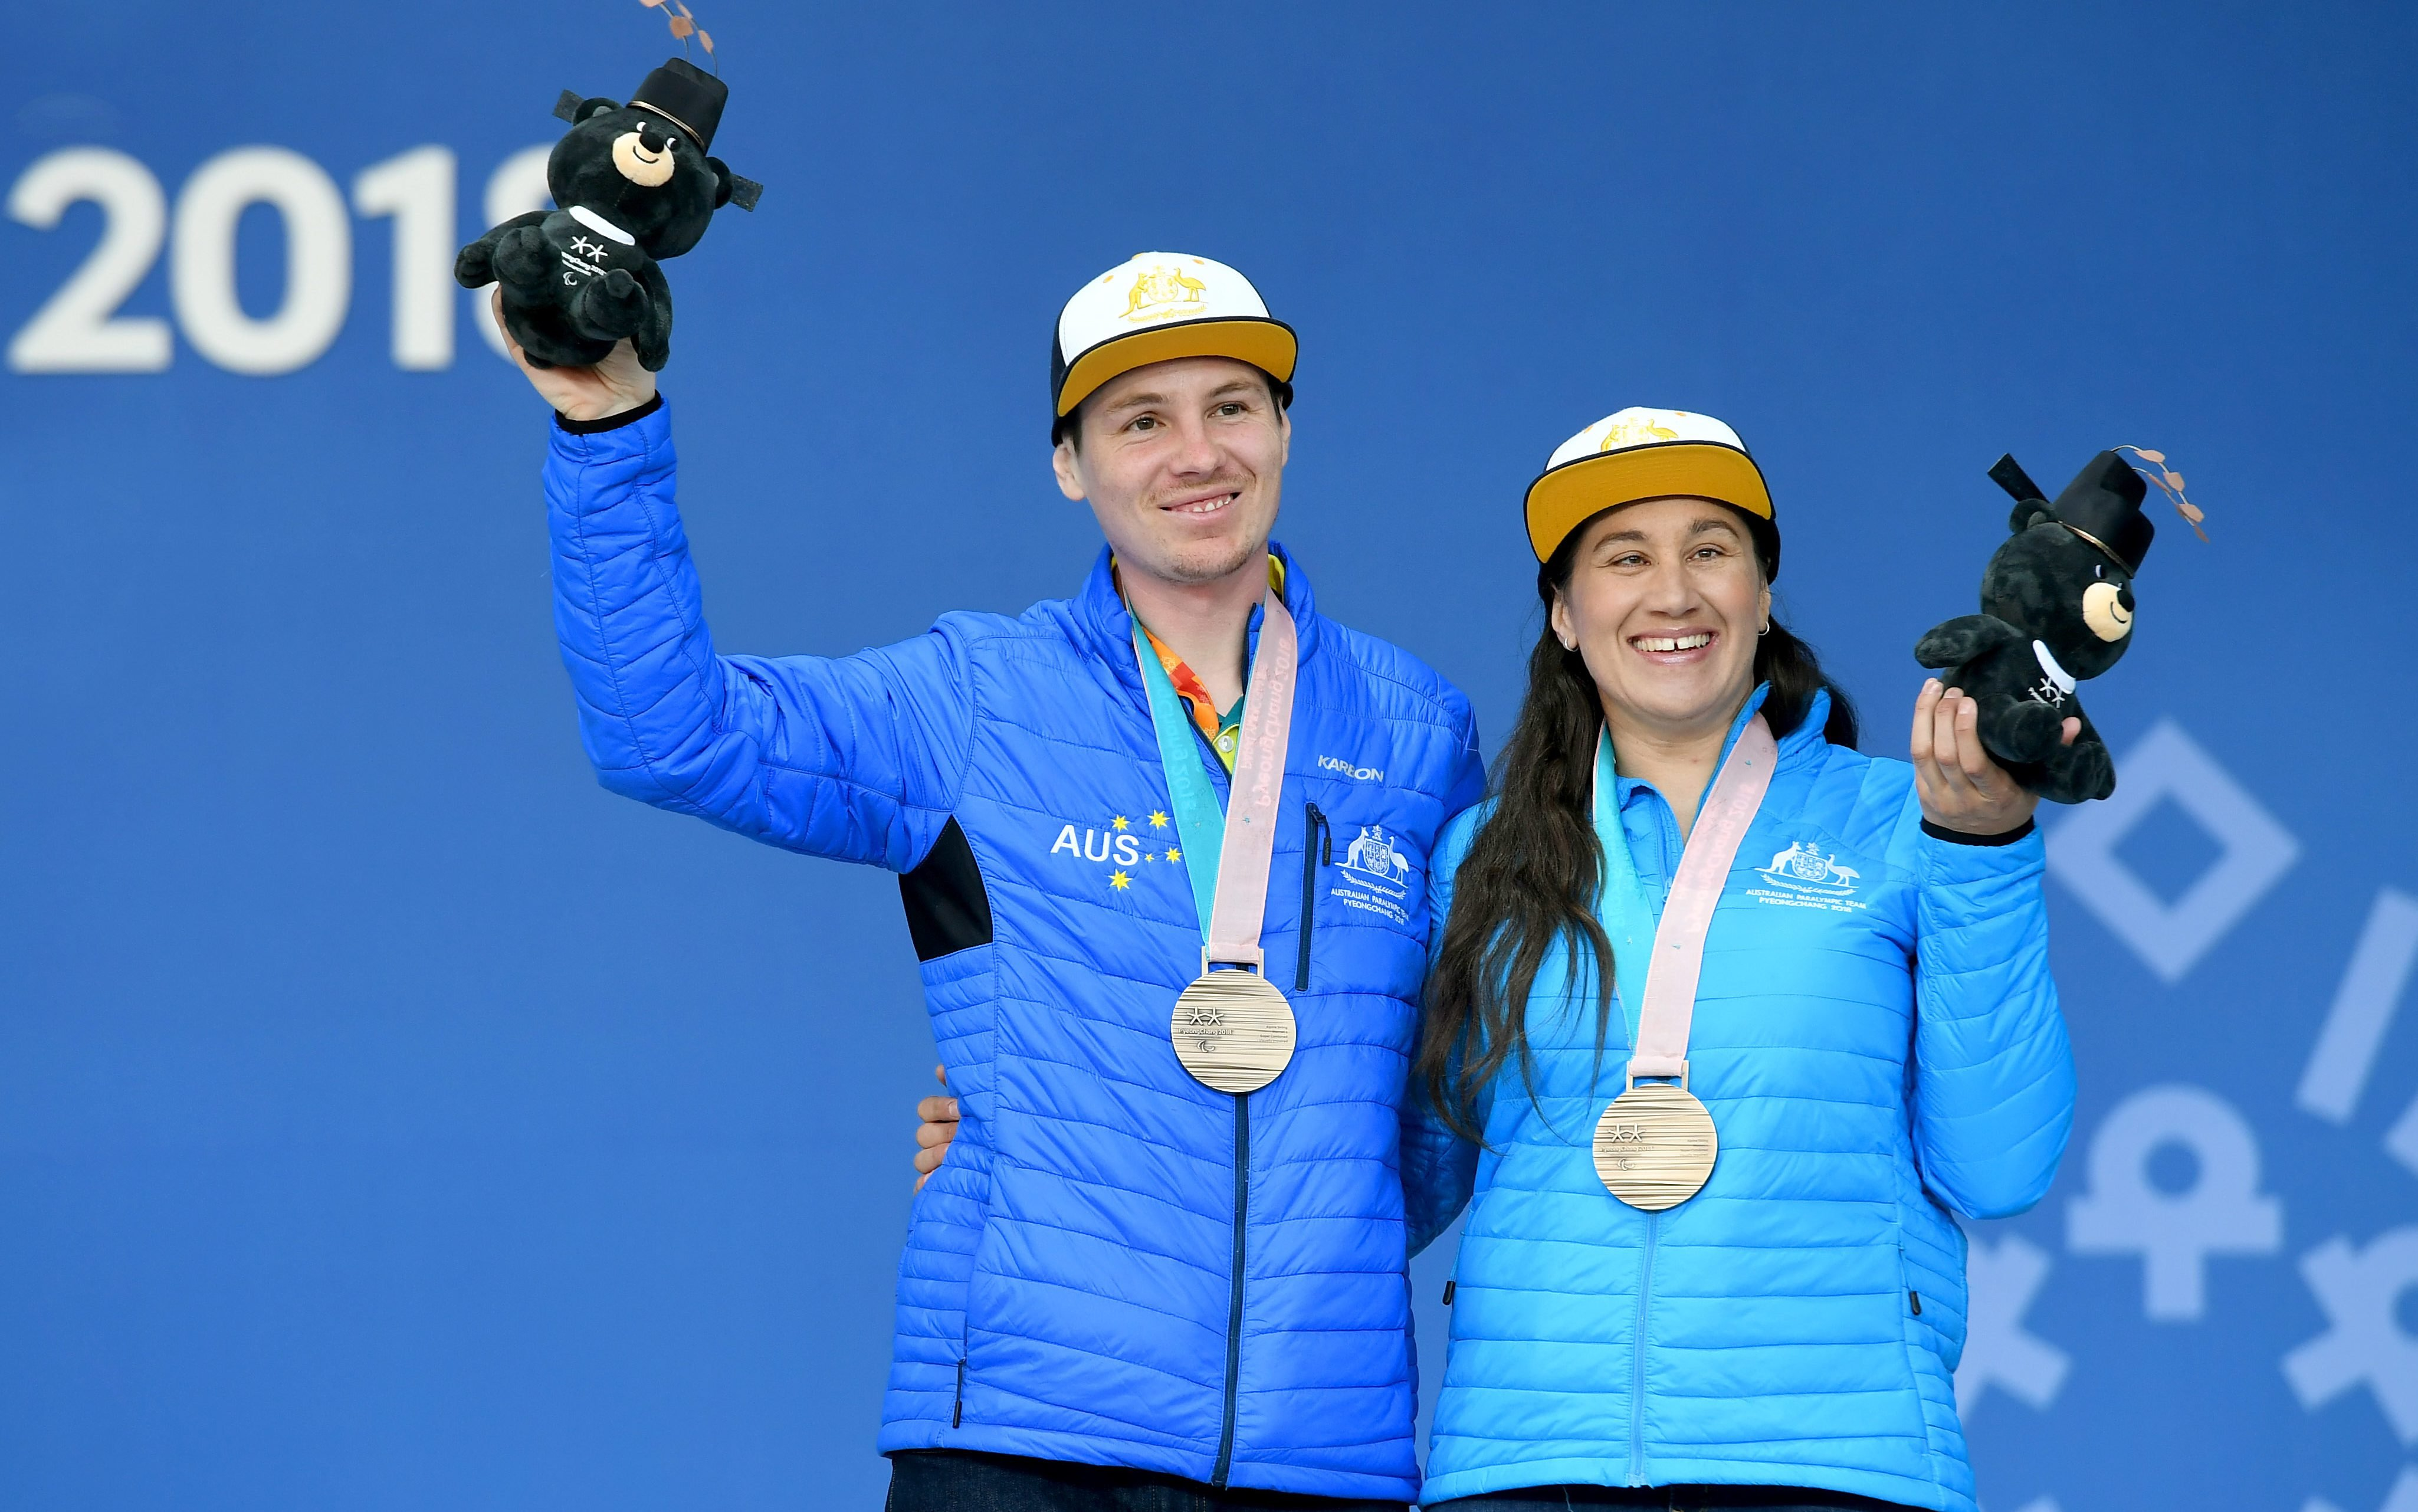 No call yet on Beijing 2022 Games by dual Paralympic bronze medallist Perrine